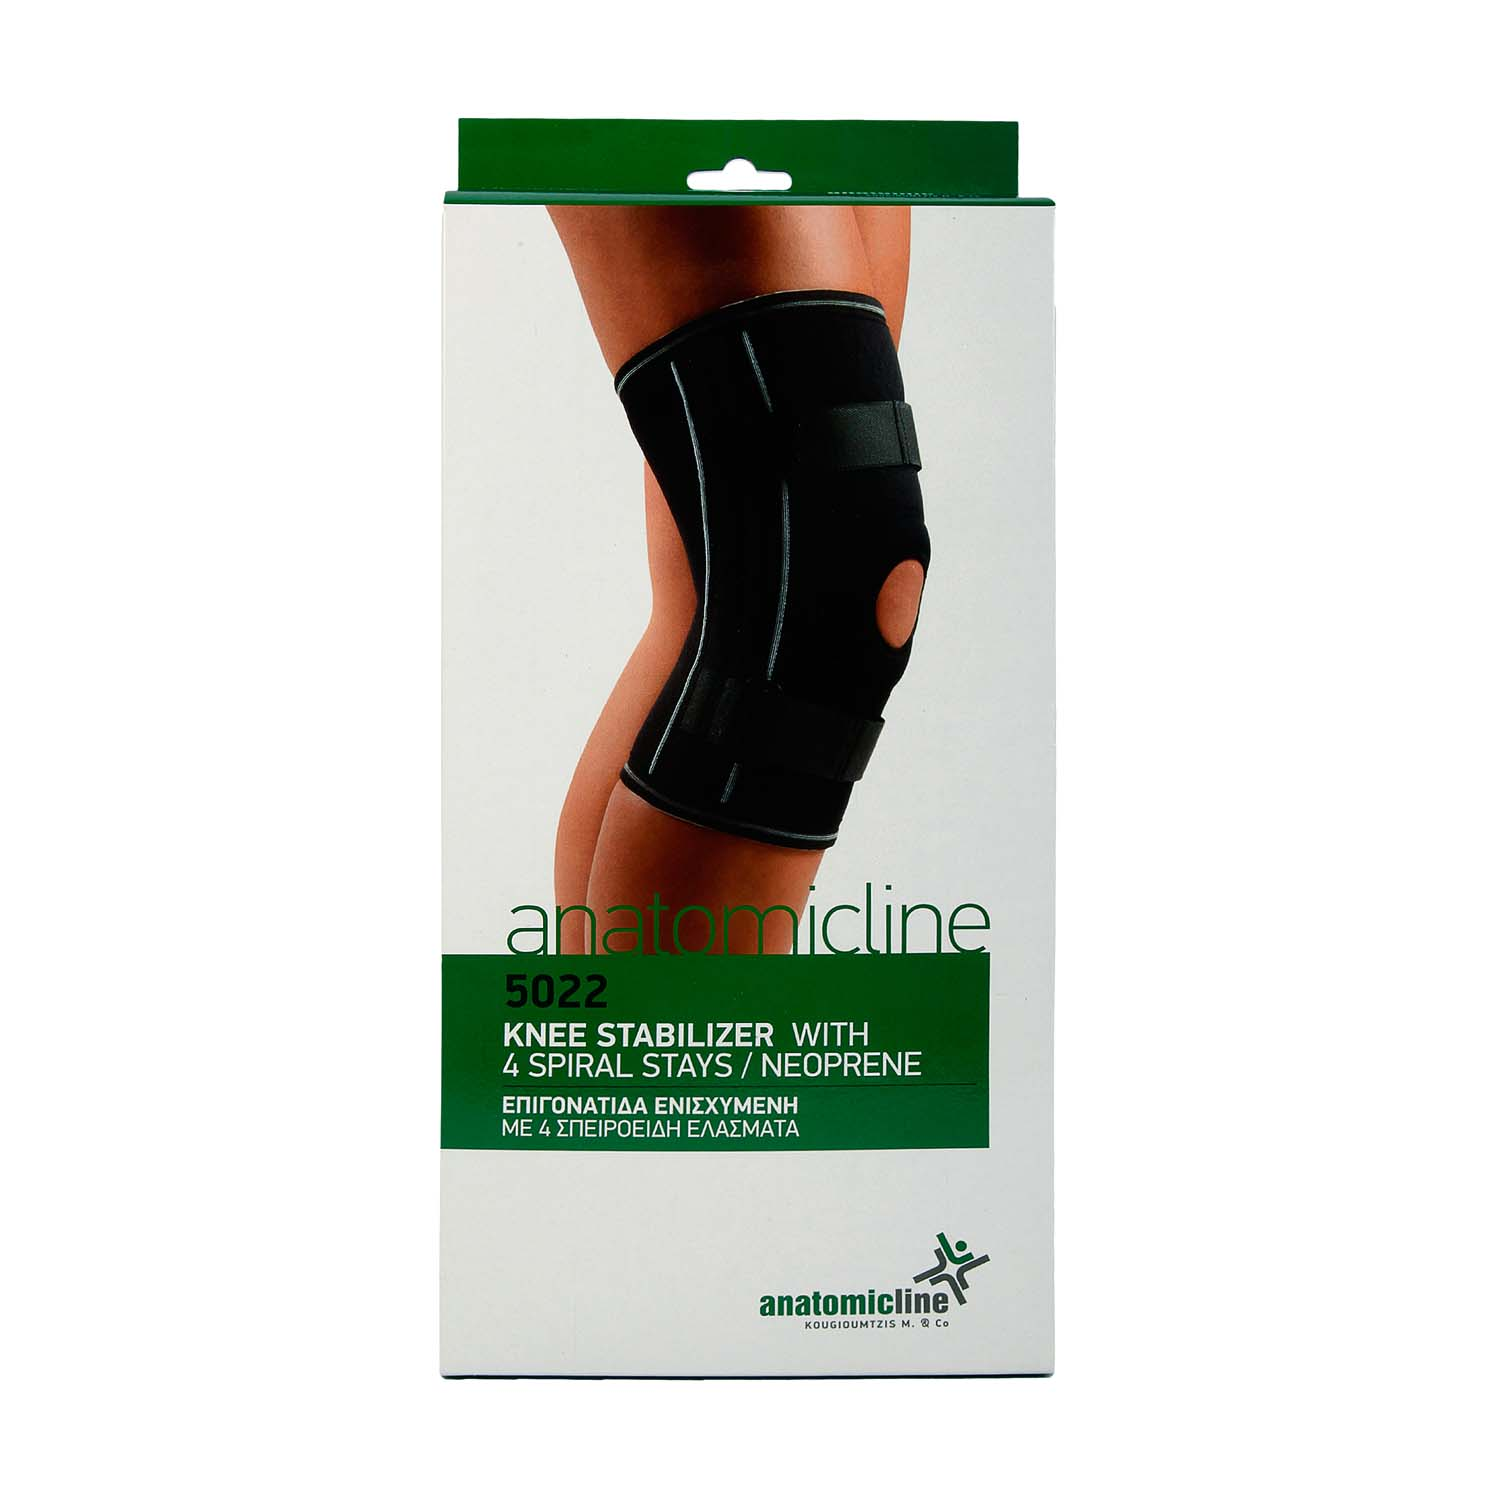 Knee stabilizer with 4 spiral stays